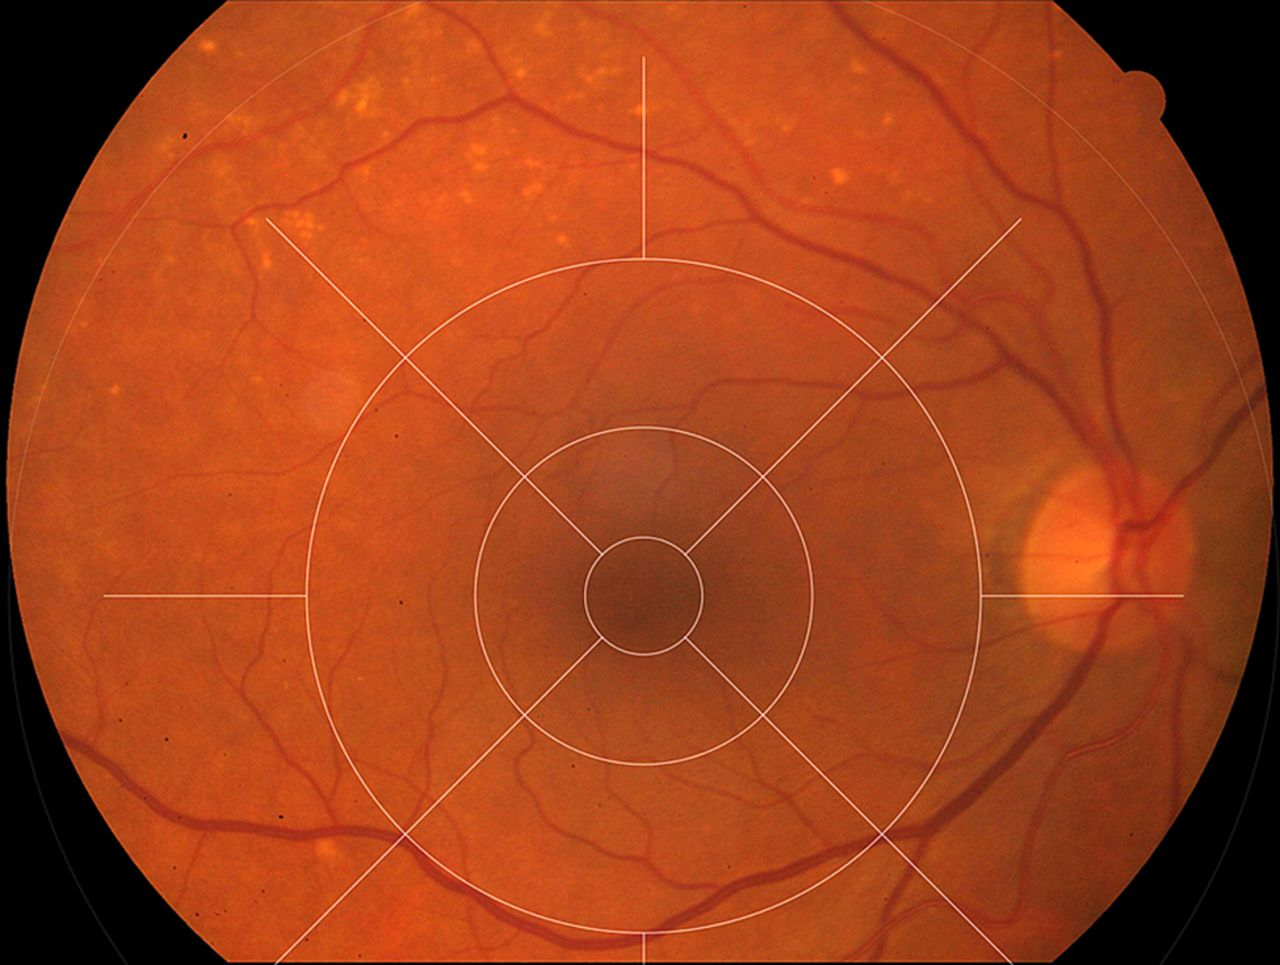 Extramacular Drusen Are Highly Associated With Age Related Macular Degeneration But Not With Cfh And Arms2 Genotypes British Journal Of Ophthalmology